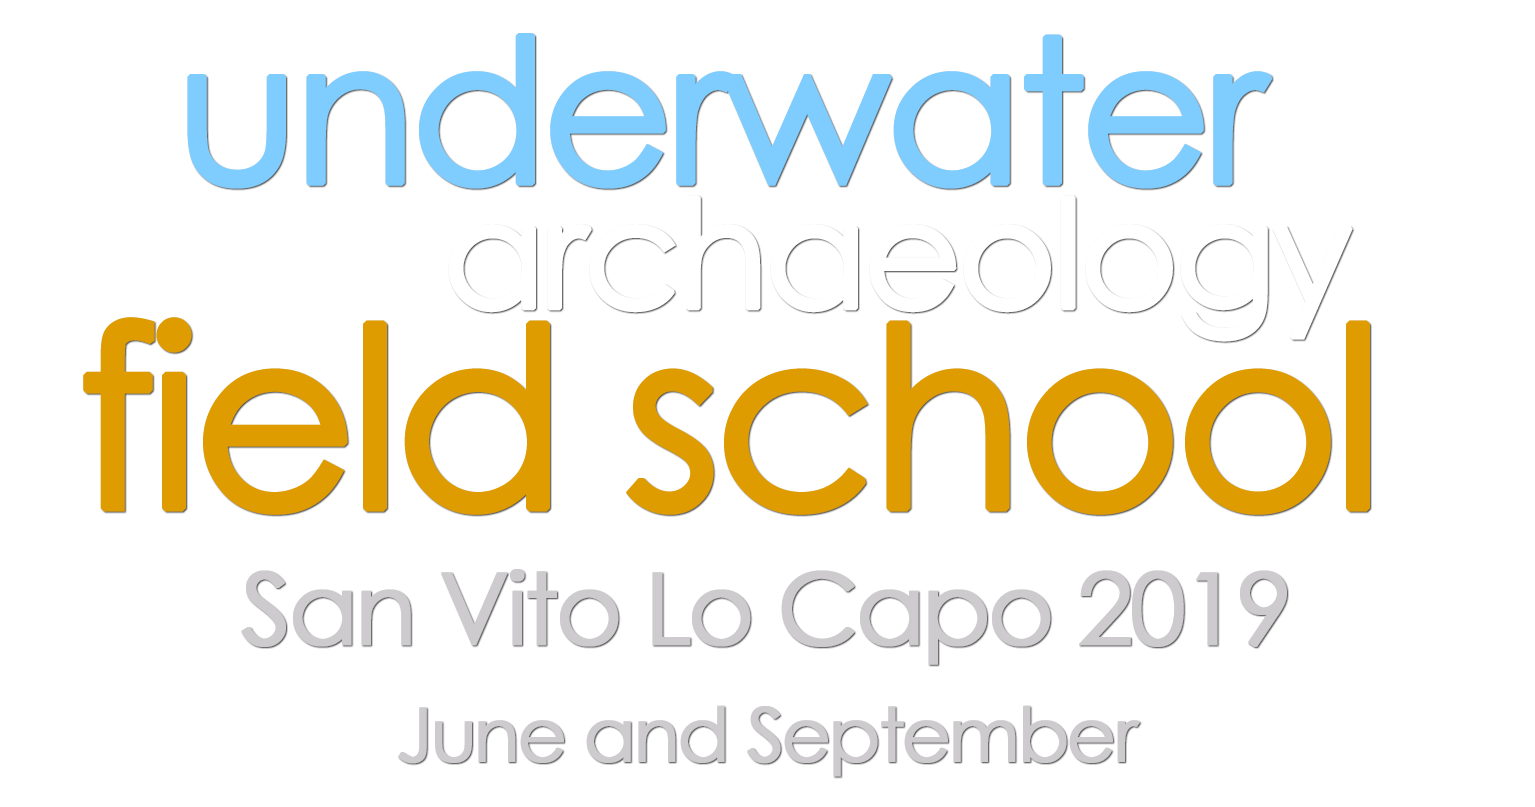 Underwater archaeology field school 2019